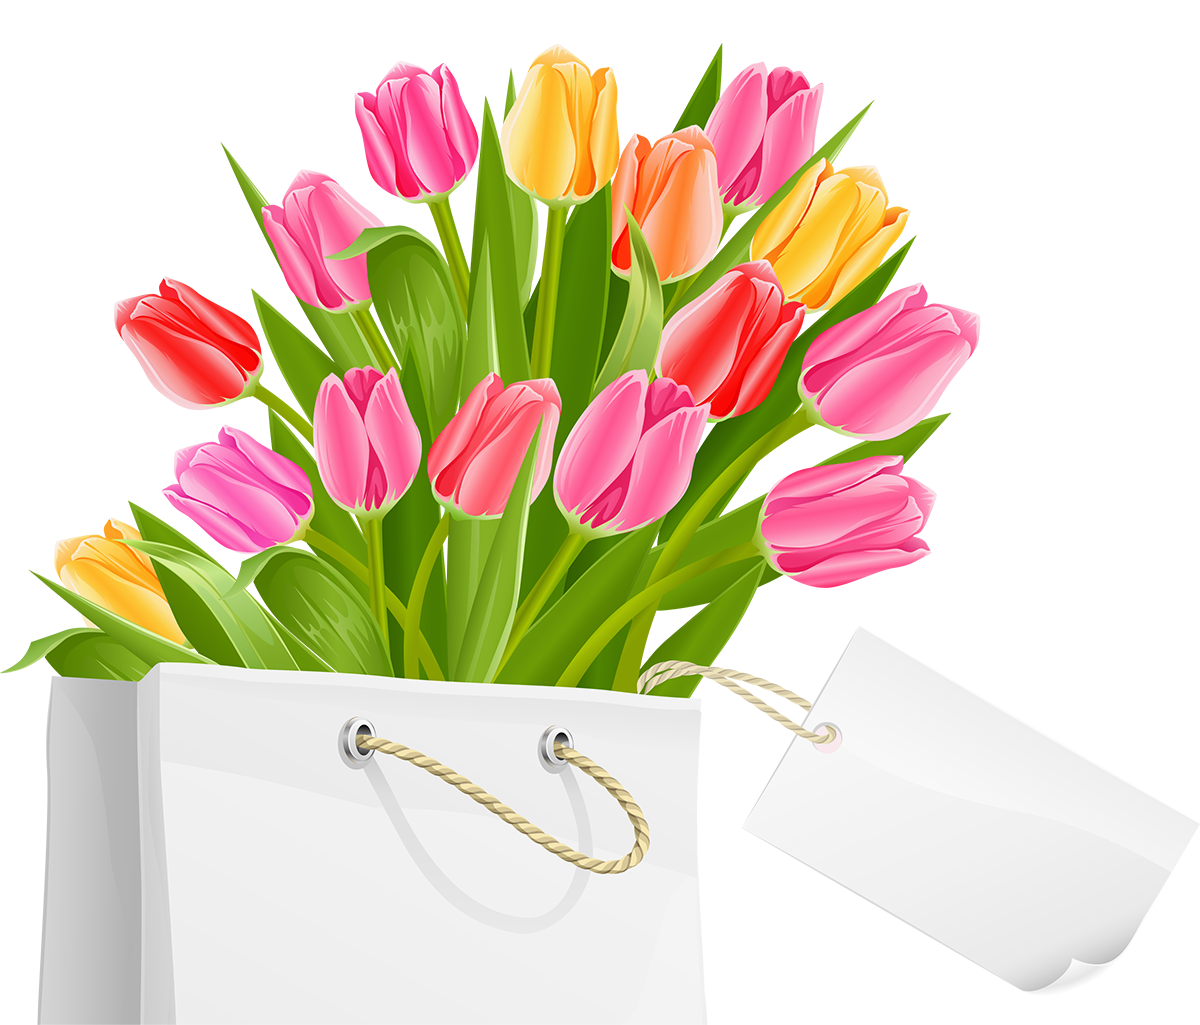 Easter flowers png. Pin by j iannarone